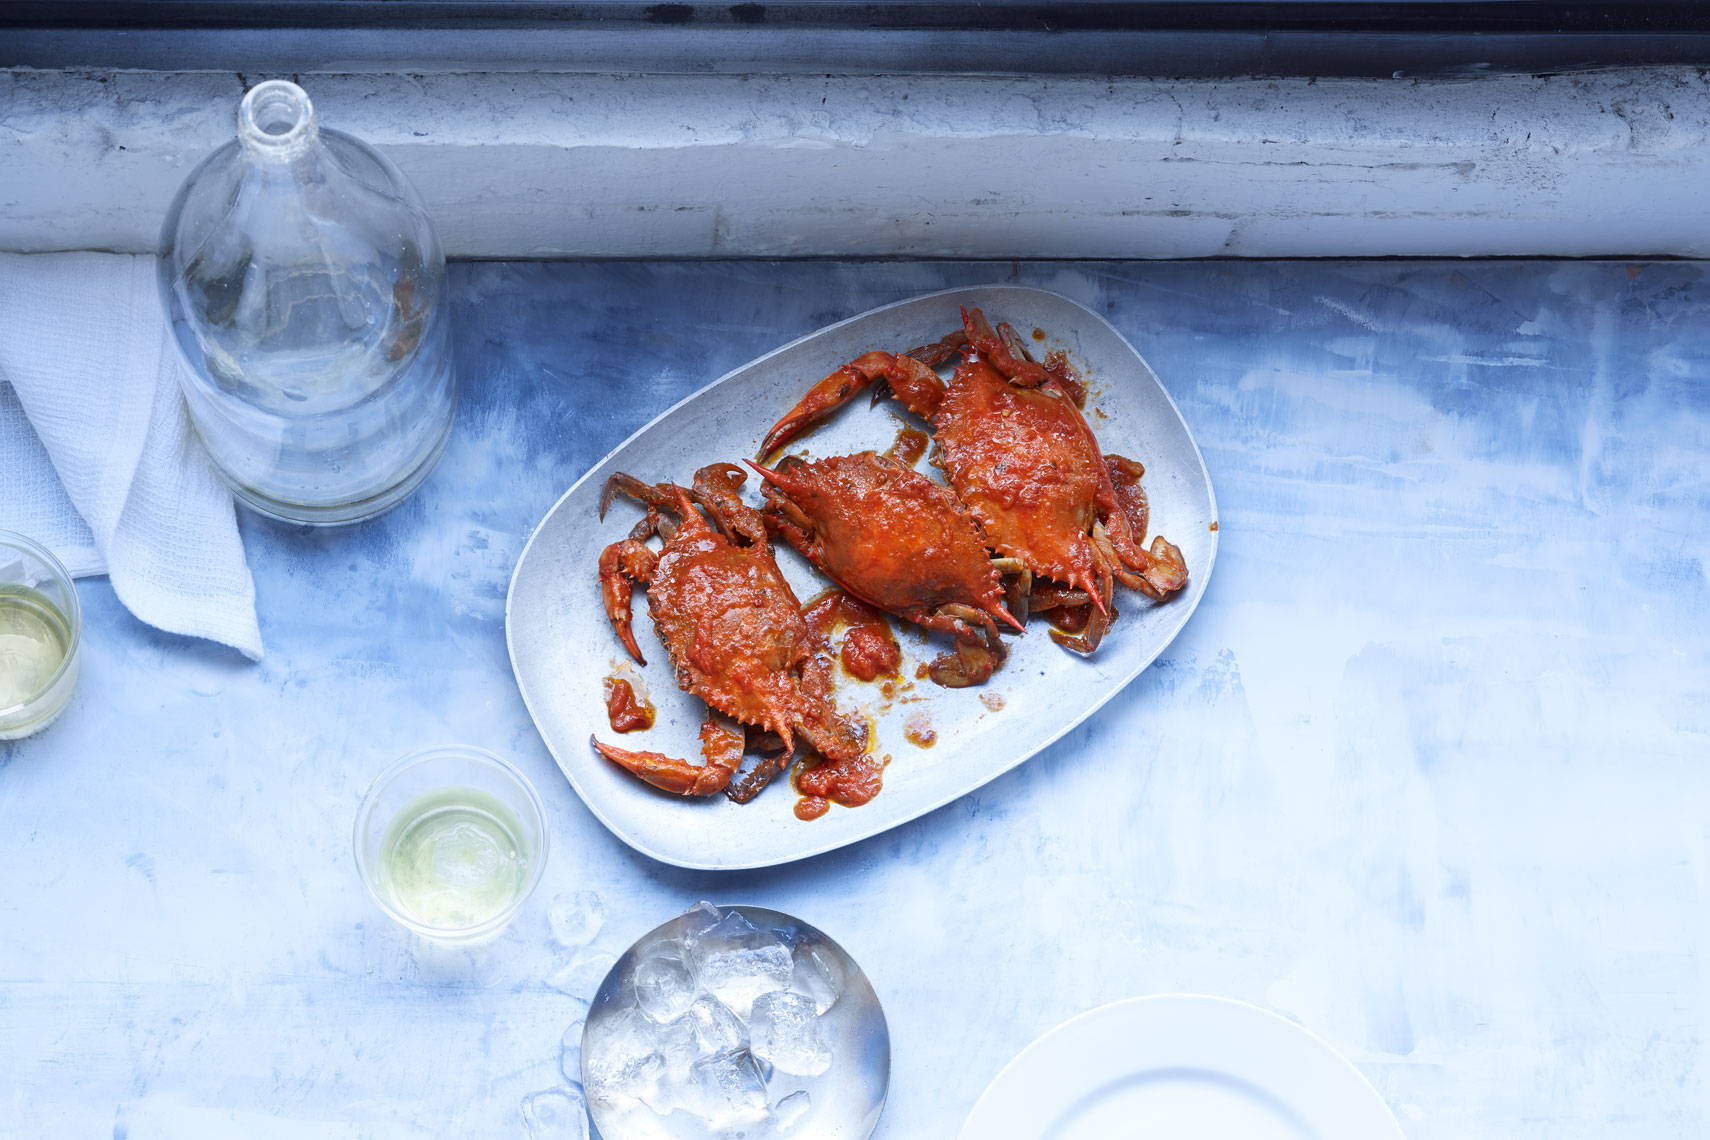 Crabs -Food Photography- © Aristo Studios